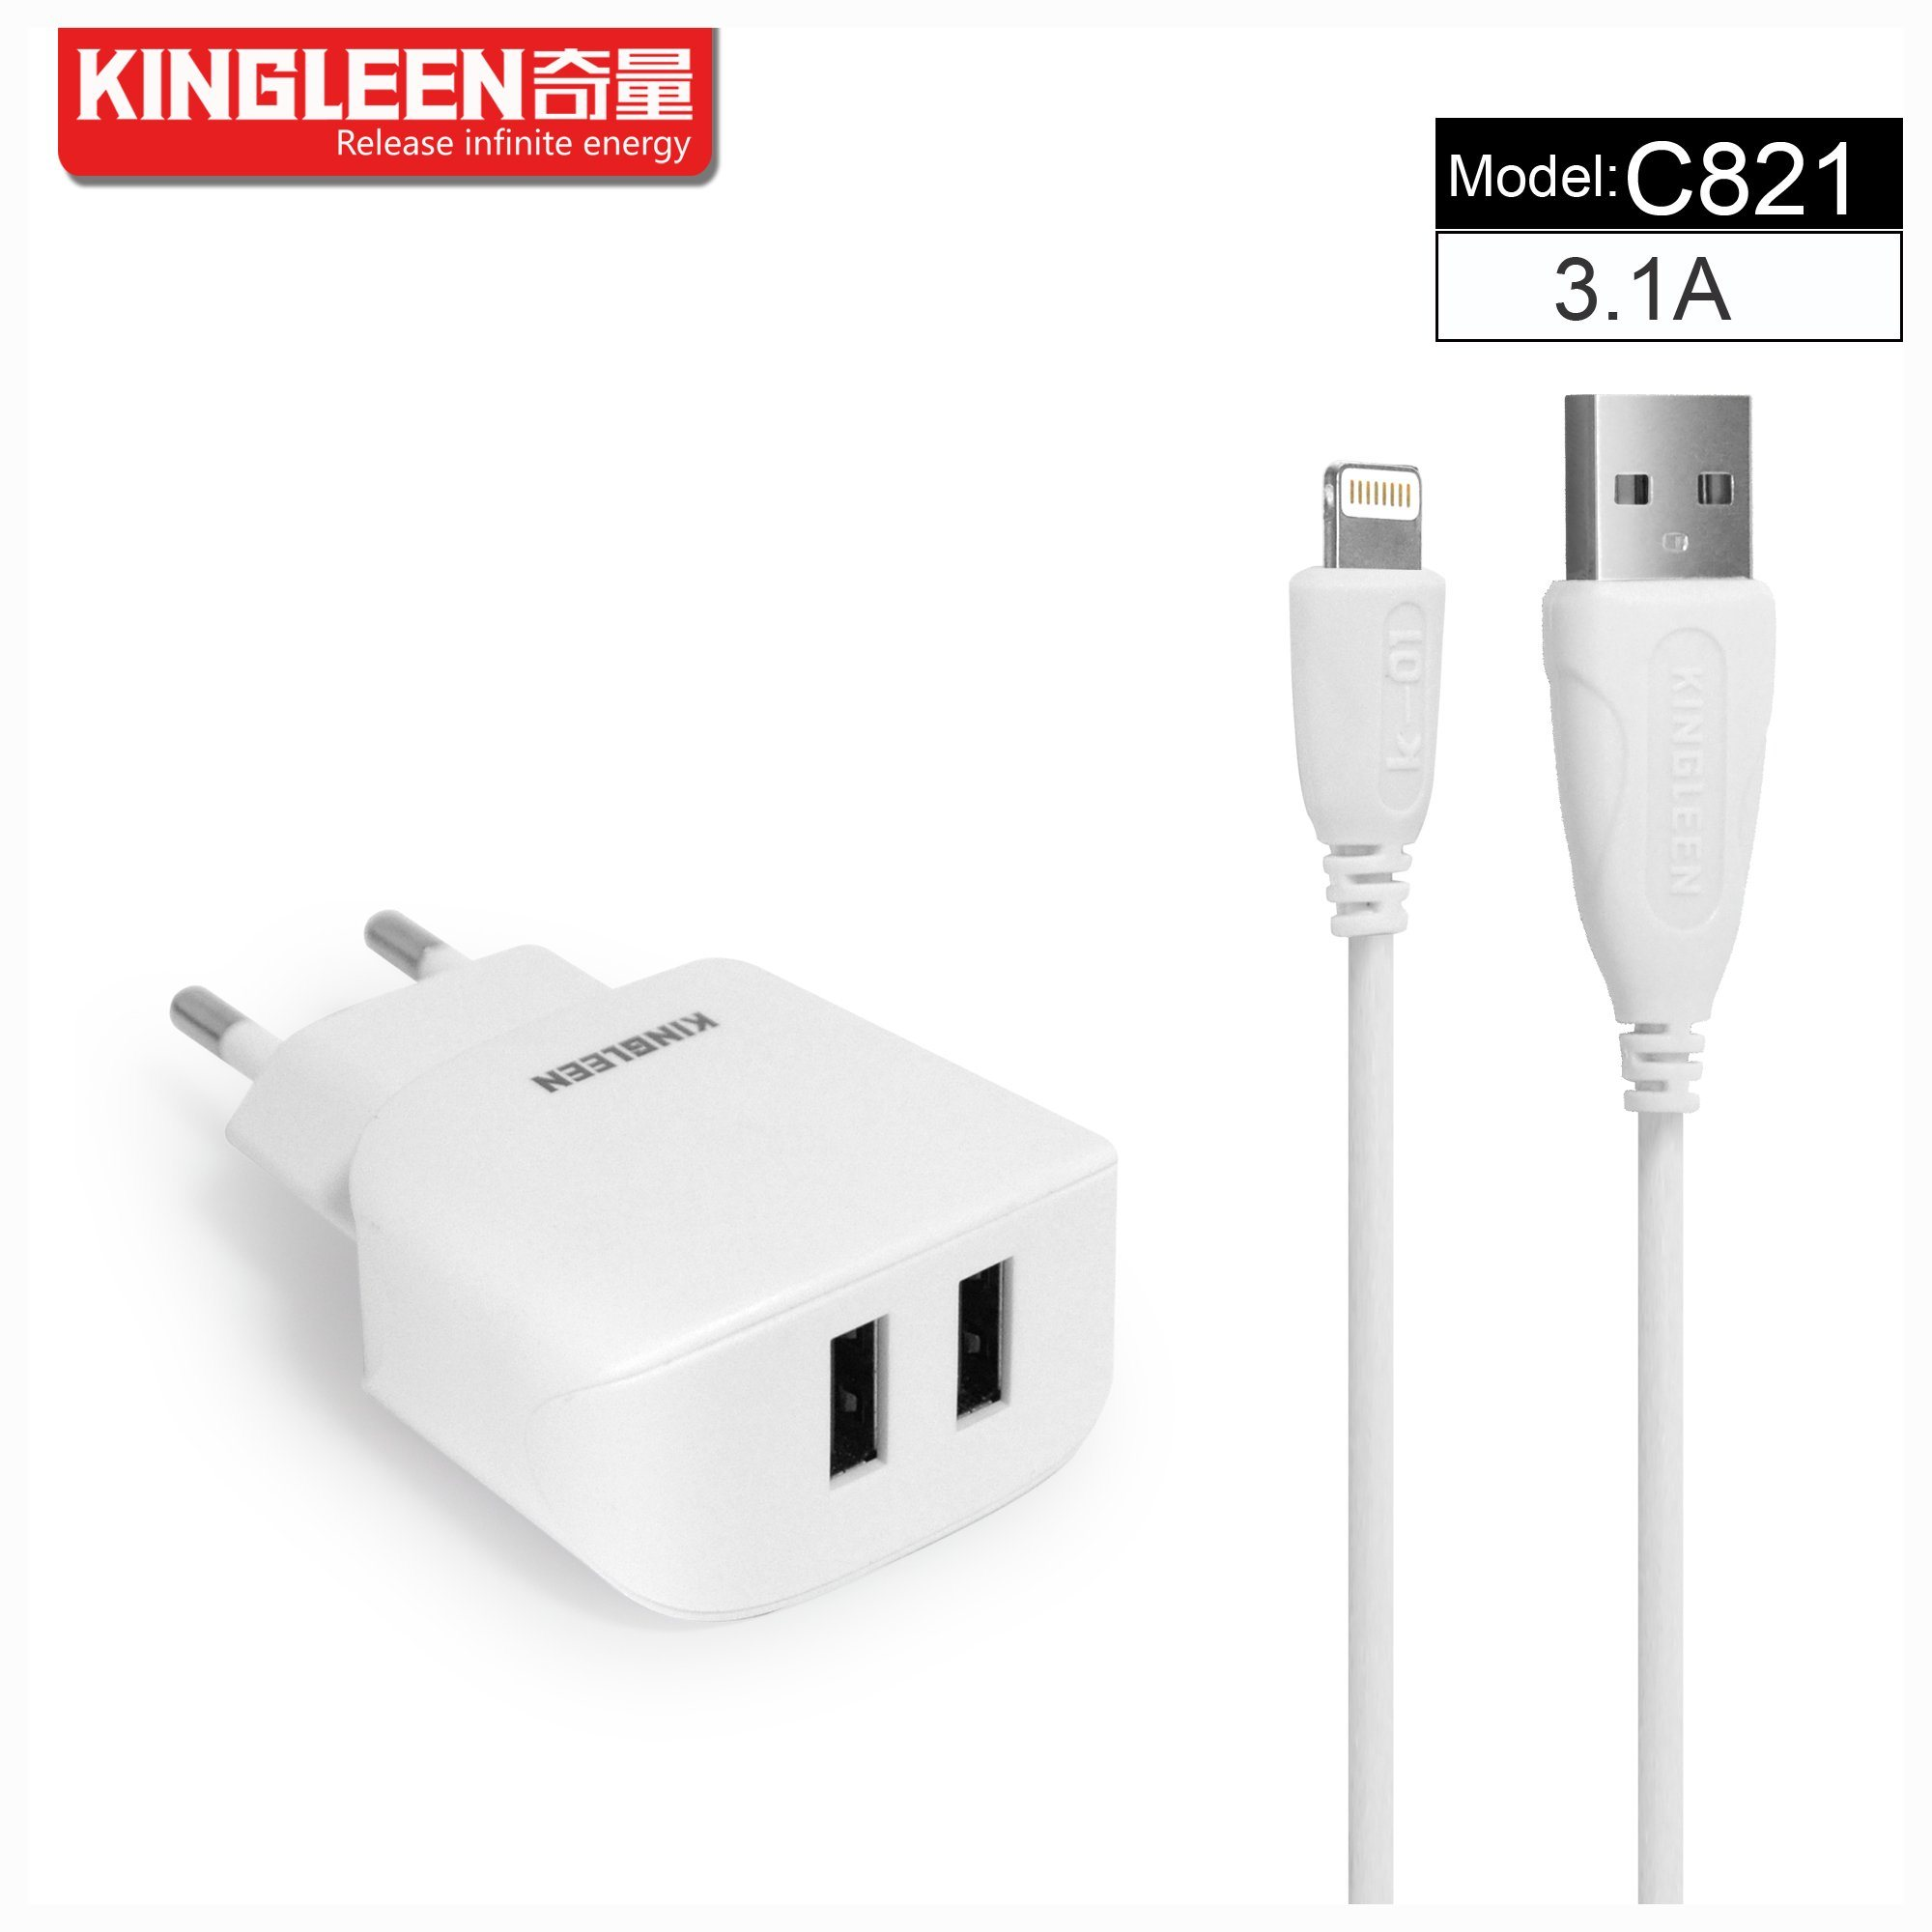 Kingleen C821 Micro/iPhone Dual USB Intelligent Battery Charger 5V3.1A Hot Sale